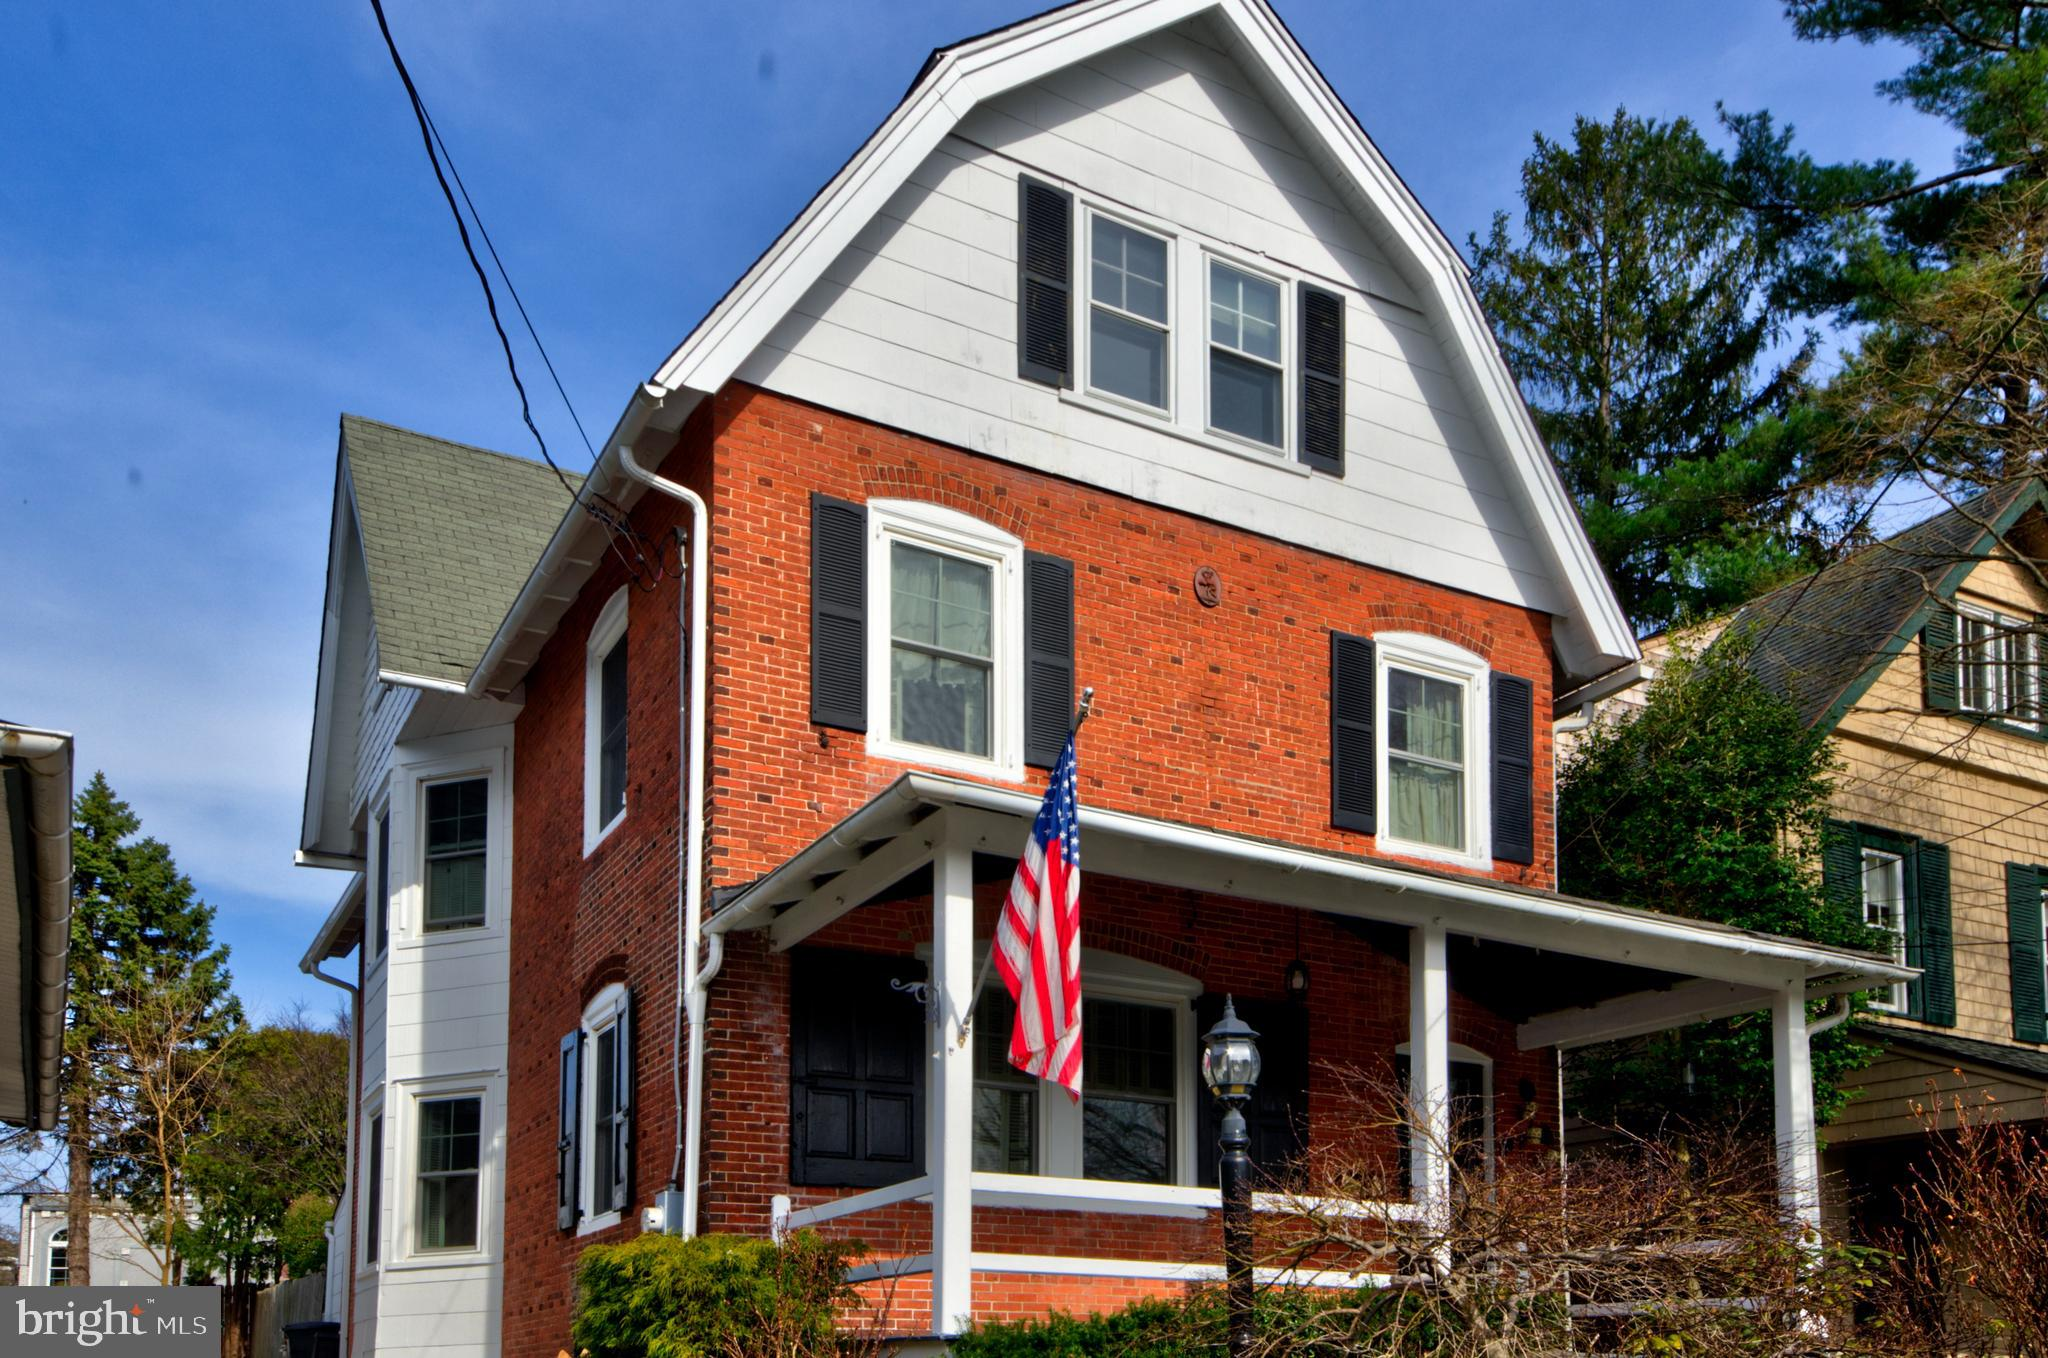 Location, Charm & Value! walk to train, walk to town. Solid brick exterior and classic front porch provide wonderful curb appeal, High ceilings, hardwood floors, spacious light filled rooms . First floor offers a welcoming foyer, formal living room, elegant Dining Room with bay window, chair rail & crown moldings, powder room and Farmhouse sized eat-in Kitchen with wood cabinetry, granite counters with an abundance of space for entertaining when all your friends wind up in the kitchen again! Just off of the kitchen a cozy Den with access to the rear patio and fenced yard.  2nd floor has four bright & spacious bedrooms with numerous windows to let in the natural light, plus a full hall Bath with tile and a pedestal sink. But Wait There's More! As you go up another flight you will find a Guest Bedroom plus a dormitory sized playroom! These 2 Bonus rooms offer a lot of options. Quiet Office space? Zoom Studio? Workout space? Au pair suite? Teenage retreat? Out of town guests? You decide! Huge Basement with loads of storage , outside exit, upgraded electric panel, Gas fired hot water heat and high Velocity energy saver air condition system makes for the best comfort in summer and winter.  Just a stone's throw from downtown Bryn Mawr's, fine dining, shopping, train lines, Bryn Mawr Hospital, colleges and more. All this in the renowned nationally ranked Radnor Schools! Just 30-40 minutes to International Airport too!